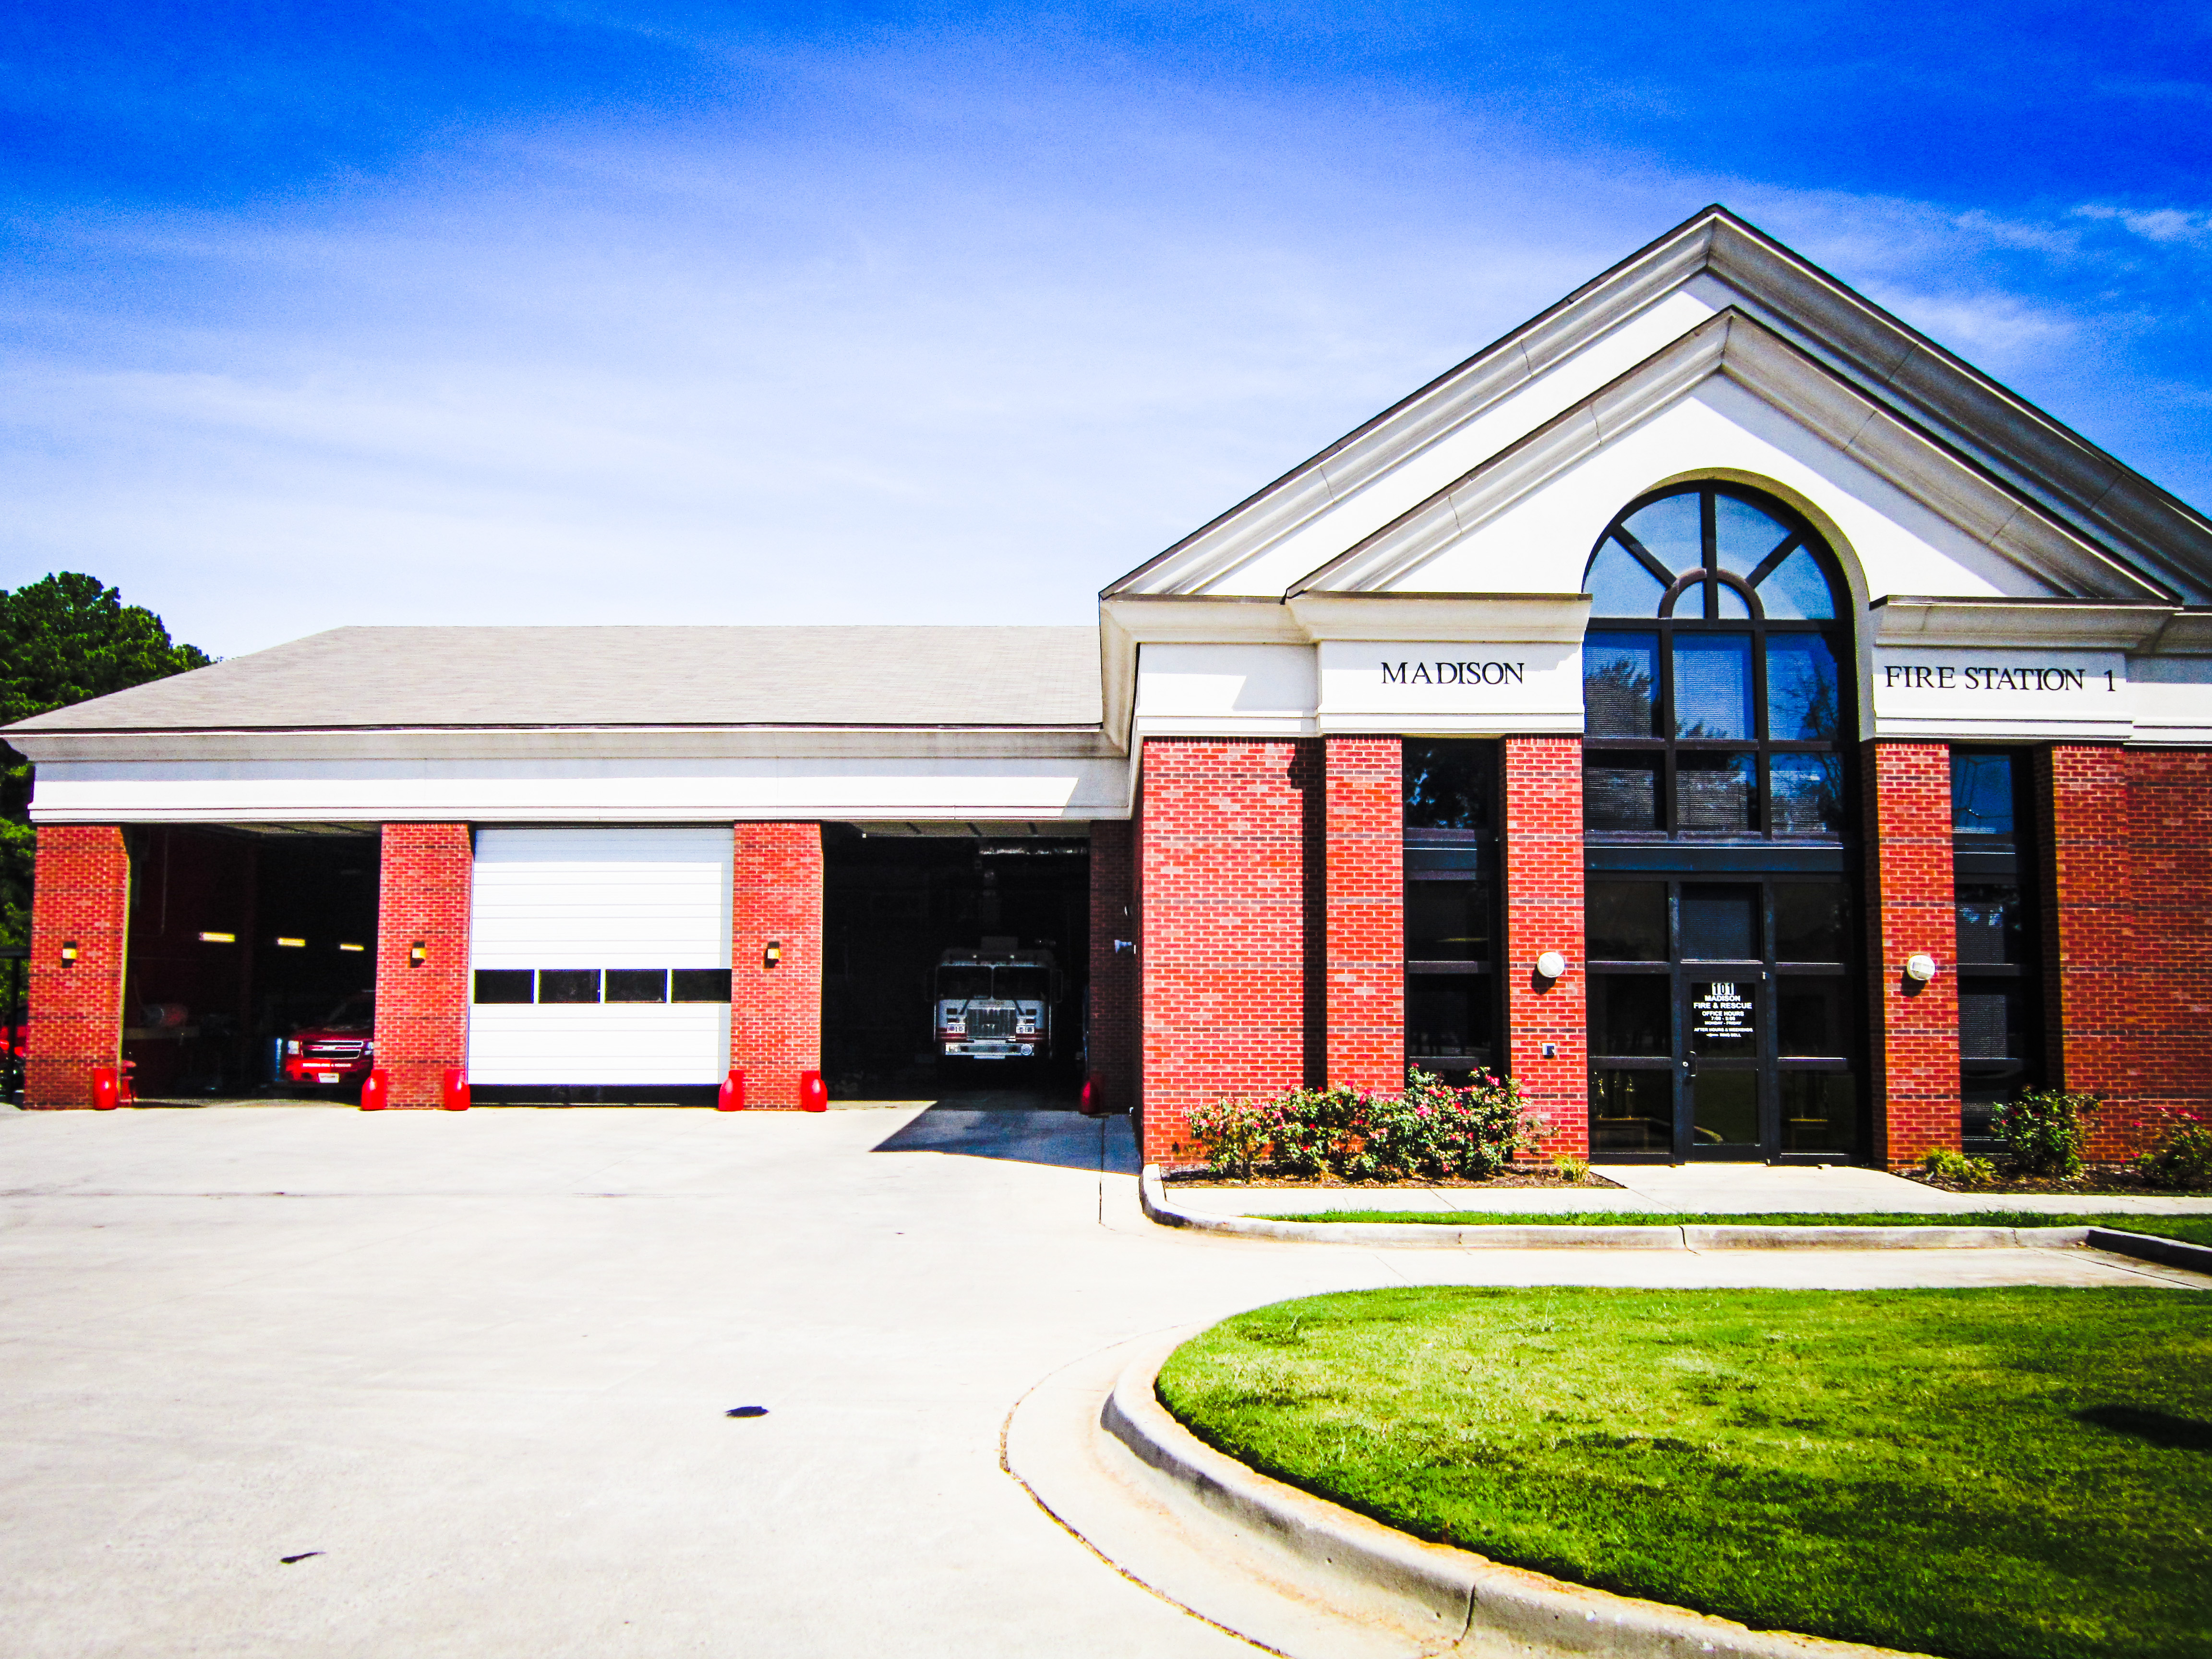 Madison Fire Station #1